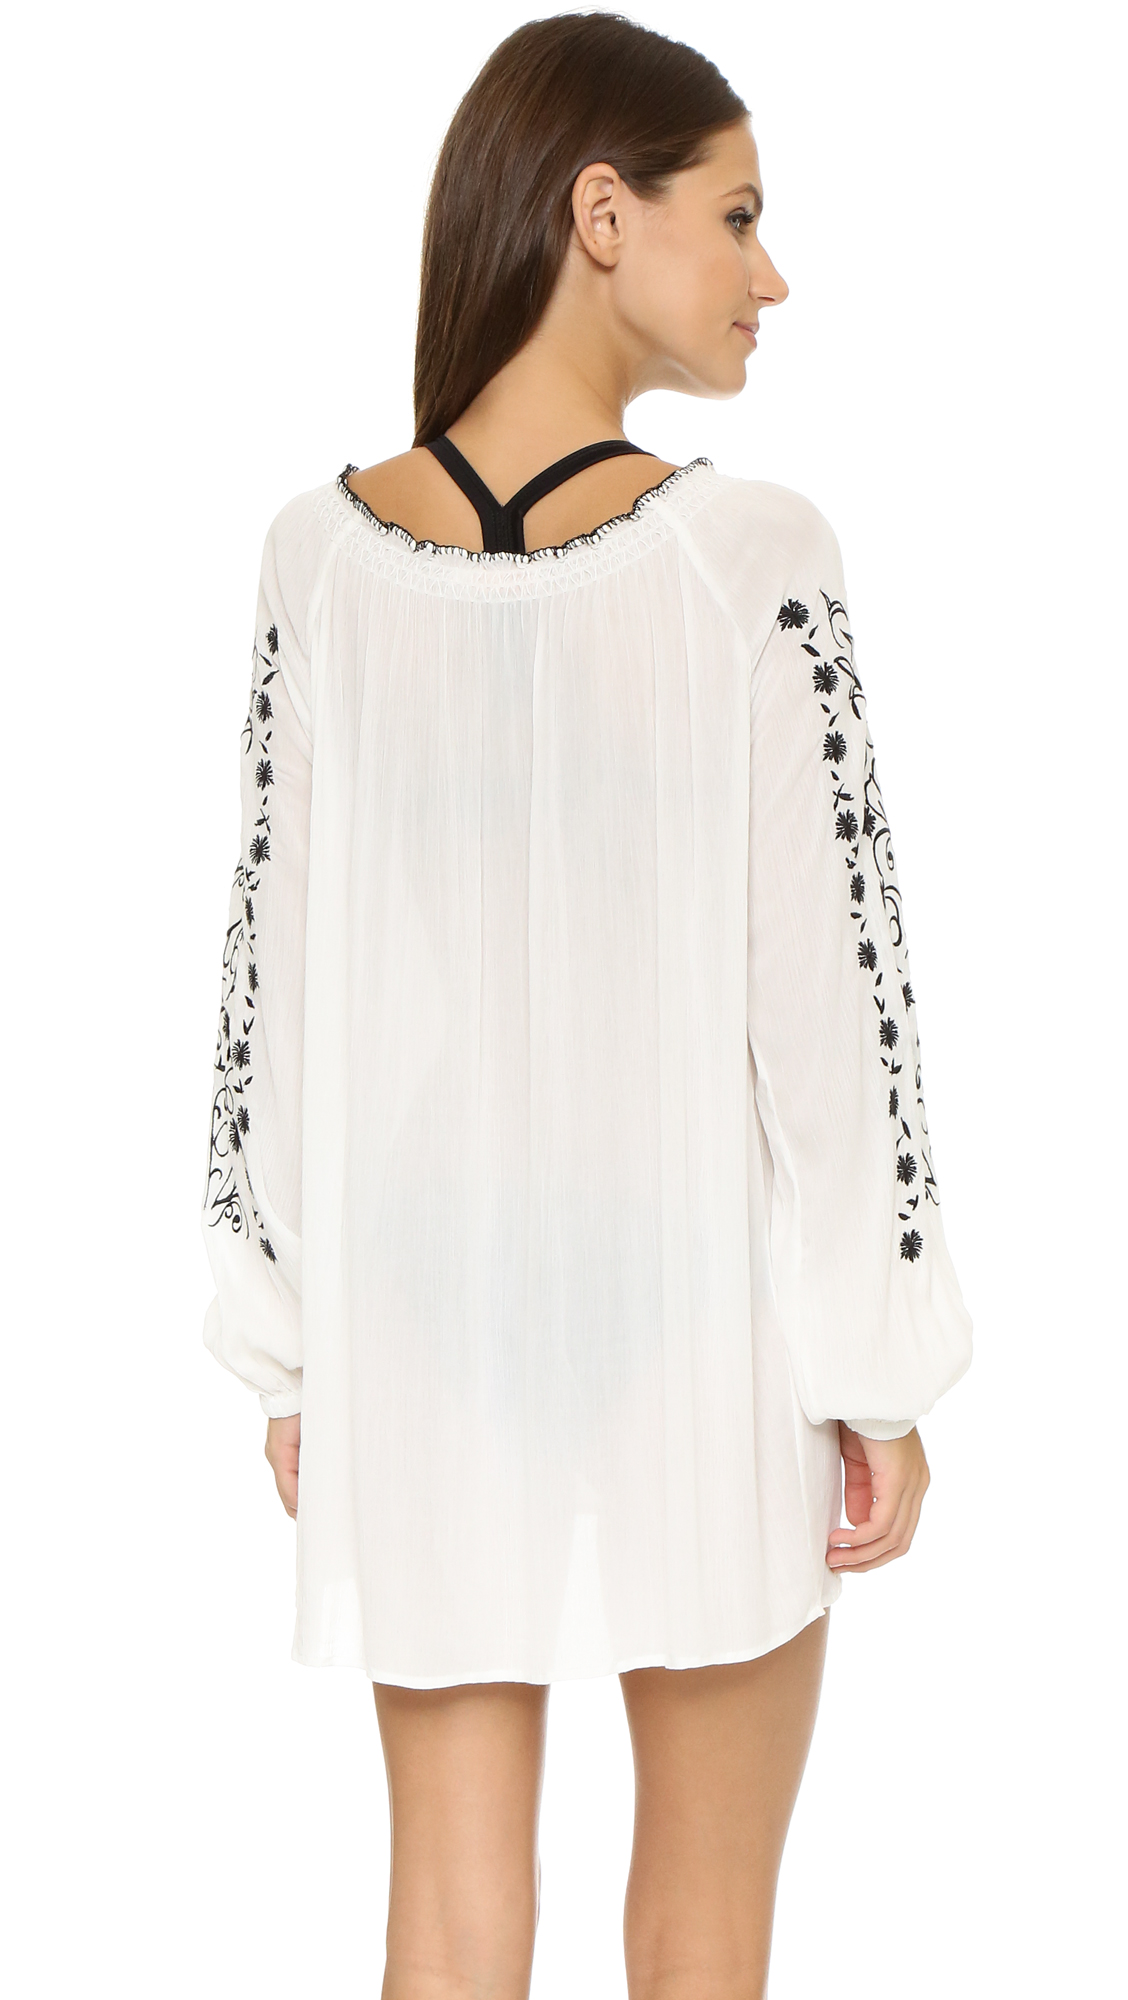 ffbb40119 Tory Burch Embroidered Crinkle Gauze Top